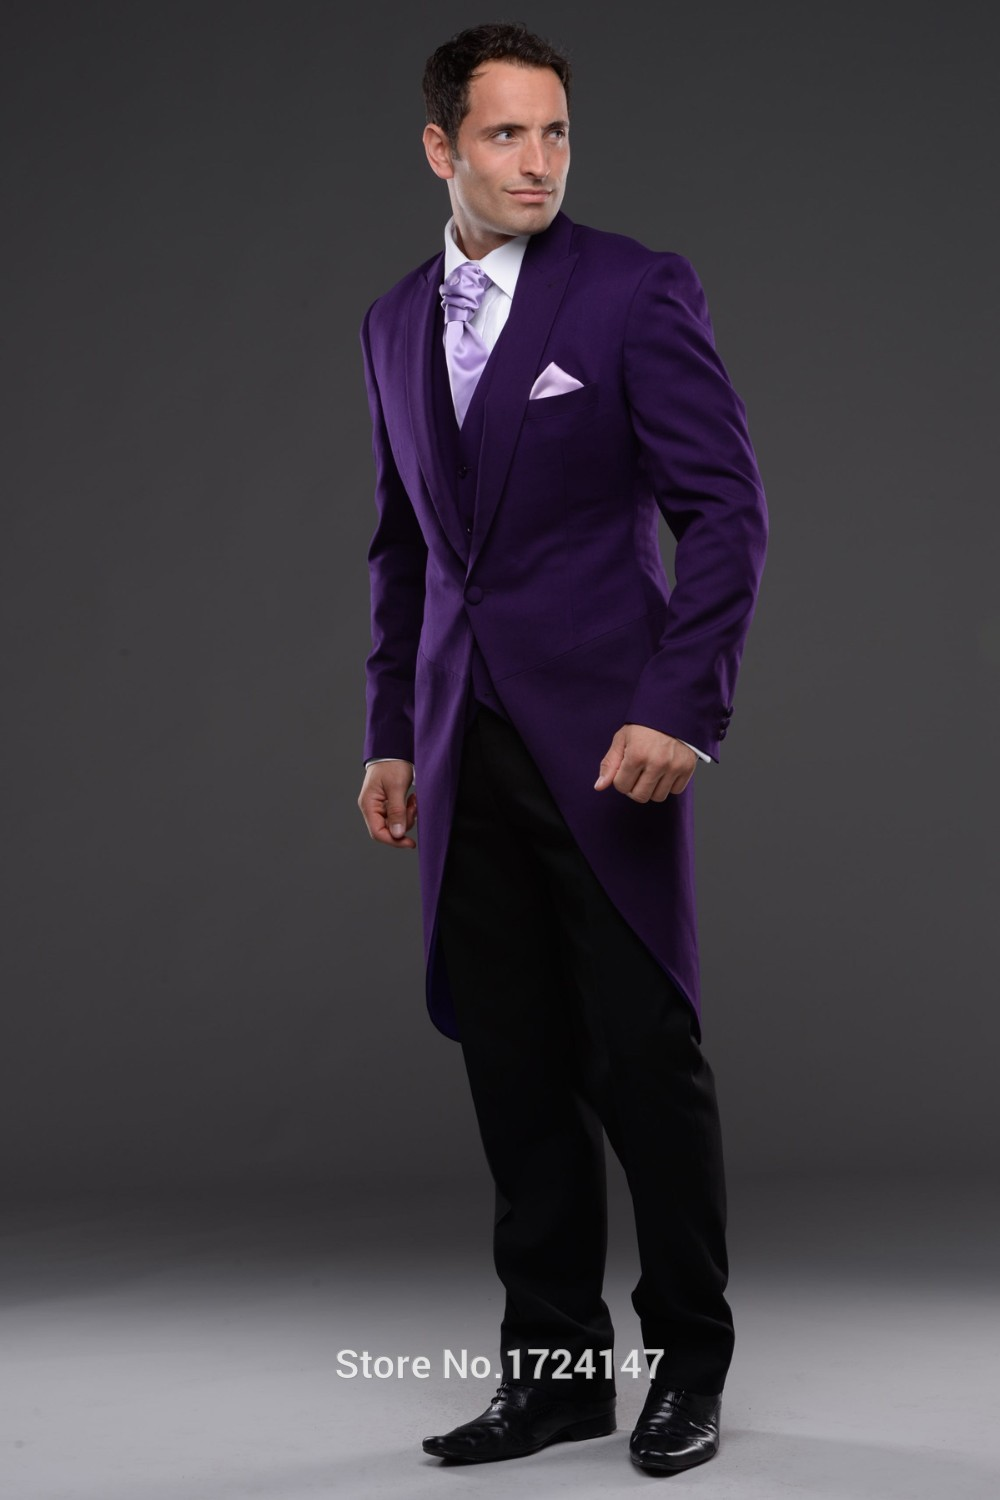 Morning Style One Button Dark Purple Groom Tuxedos Groomsmen Men's Wedding Prom Suits Custom Made (Jacket+Pants+Vest+Tie) K:208